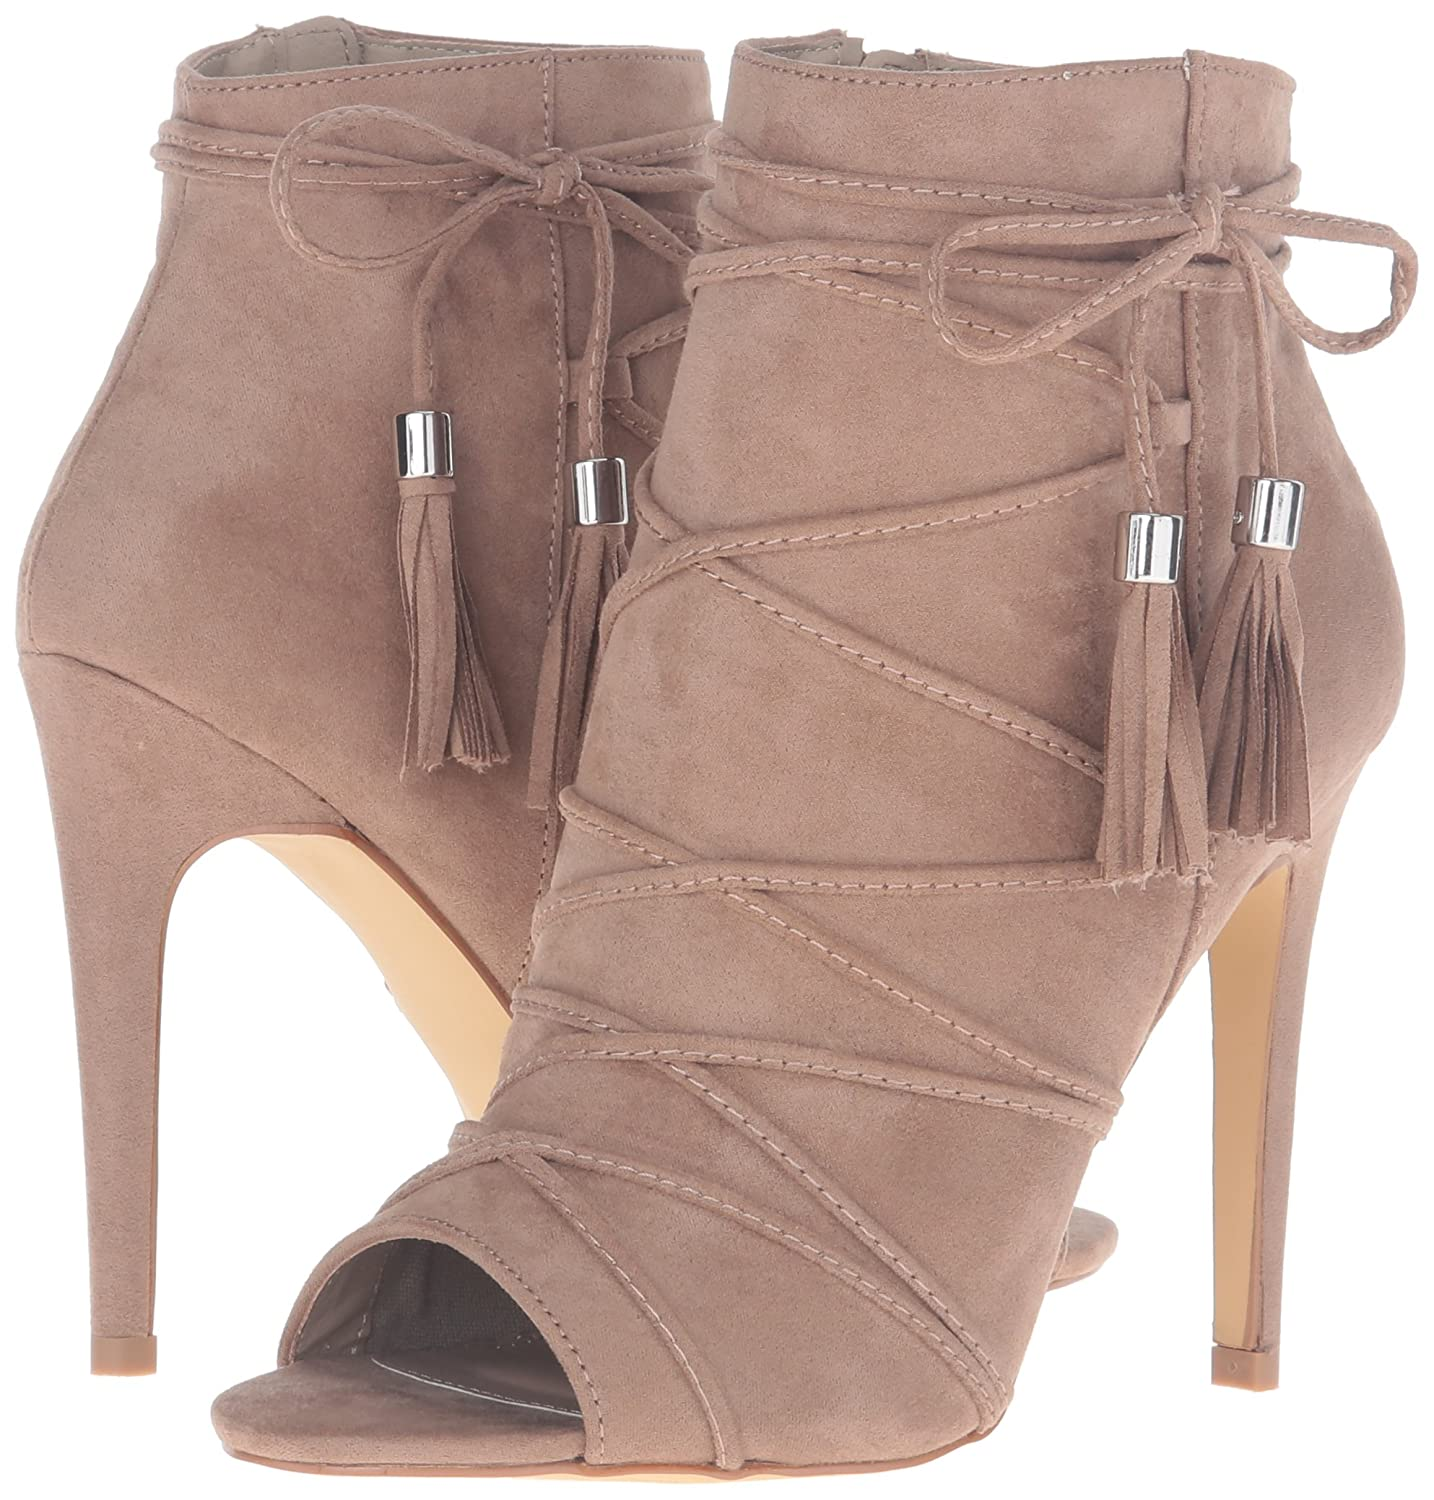 Madden Girl Women's Koorset Ankle Bootie B01E9US3F0 7.5 B(M) US Taupe Fabric